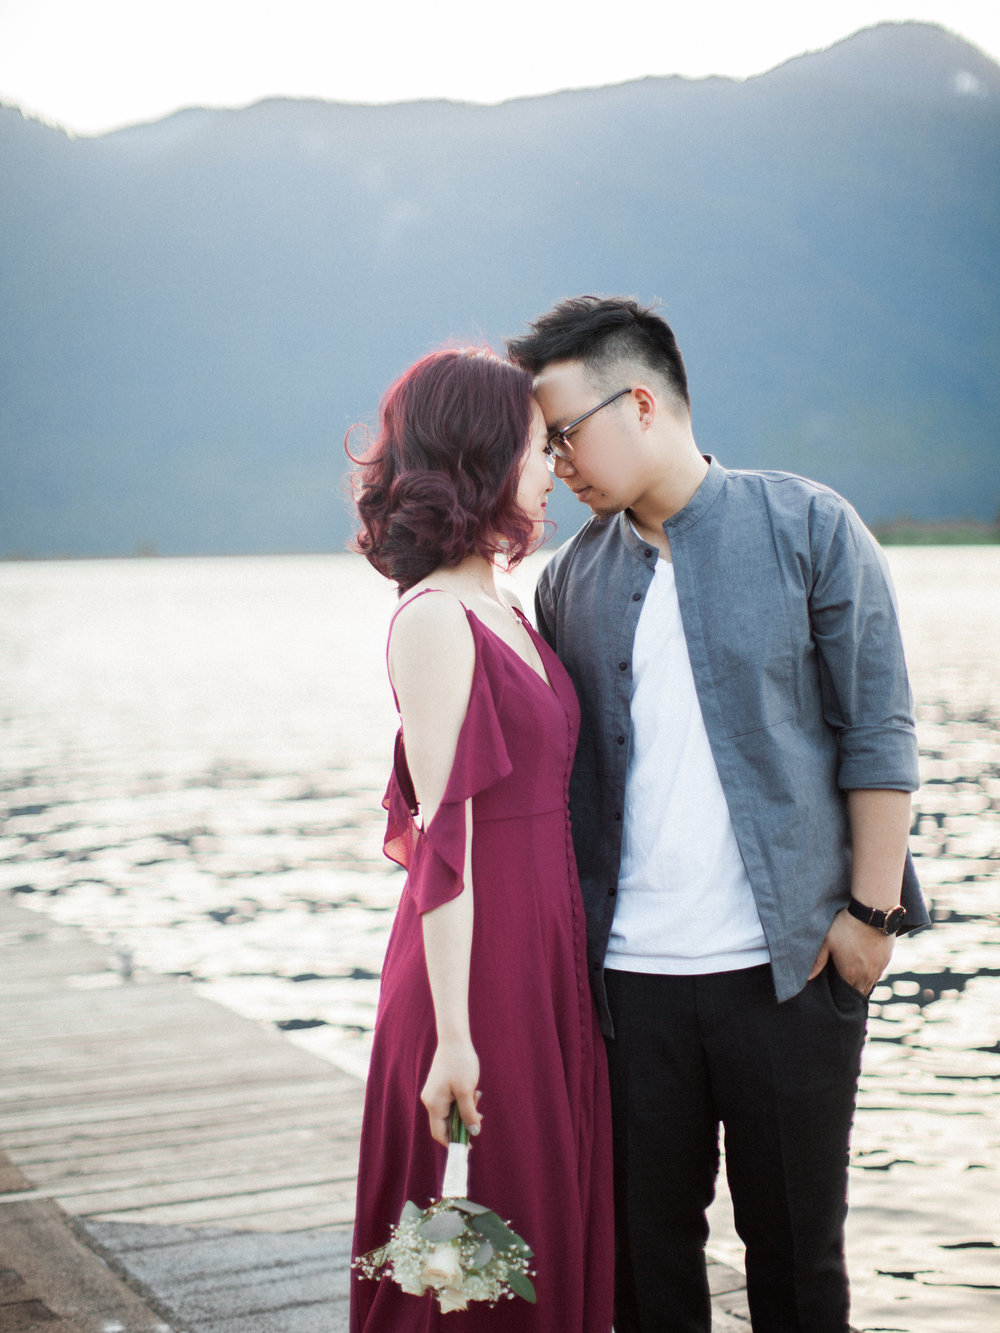 20170528Maple_Ridge_Engagement_Mary_Marco_Prewedding-25 copy.jpg